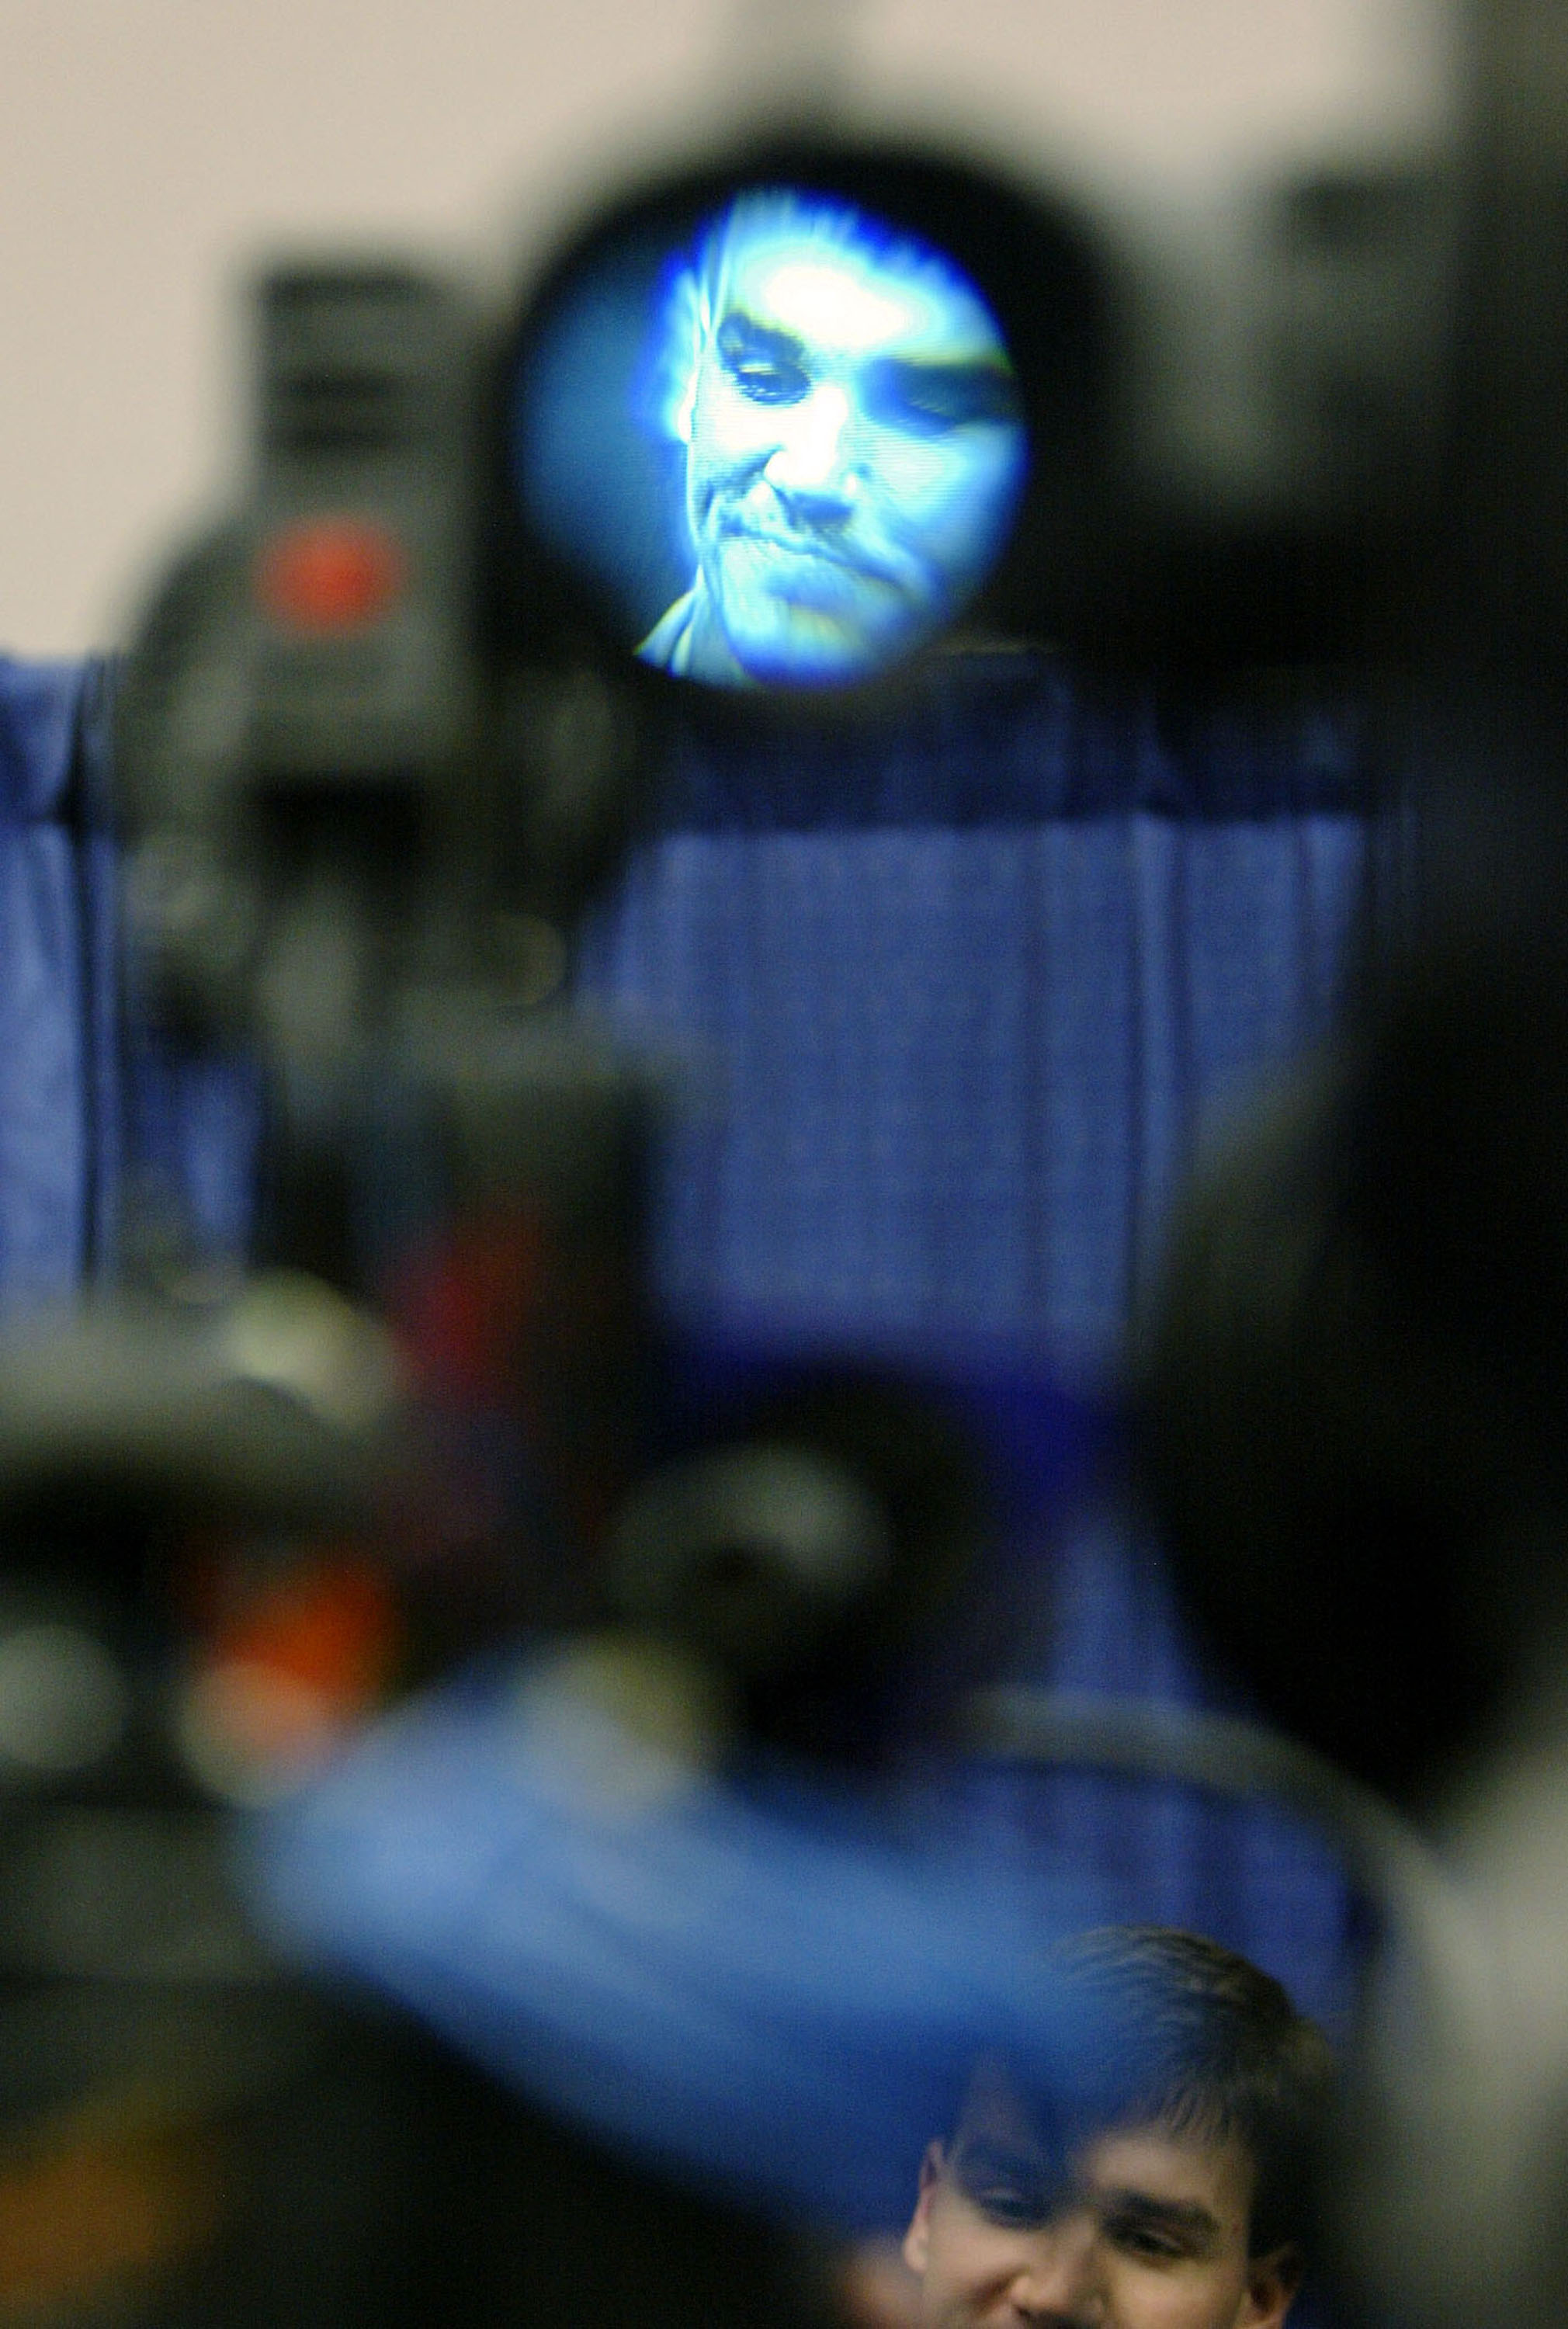 HOUSTON - JANUARY 26:  Quarterback Jake Delhomme of the Carolina Panthers is seen through the view finder of a television camera as he answers questions from the media as a television camera rolls before Super Bowl XXXVIII against the New England Patriots